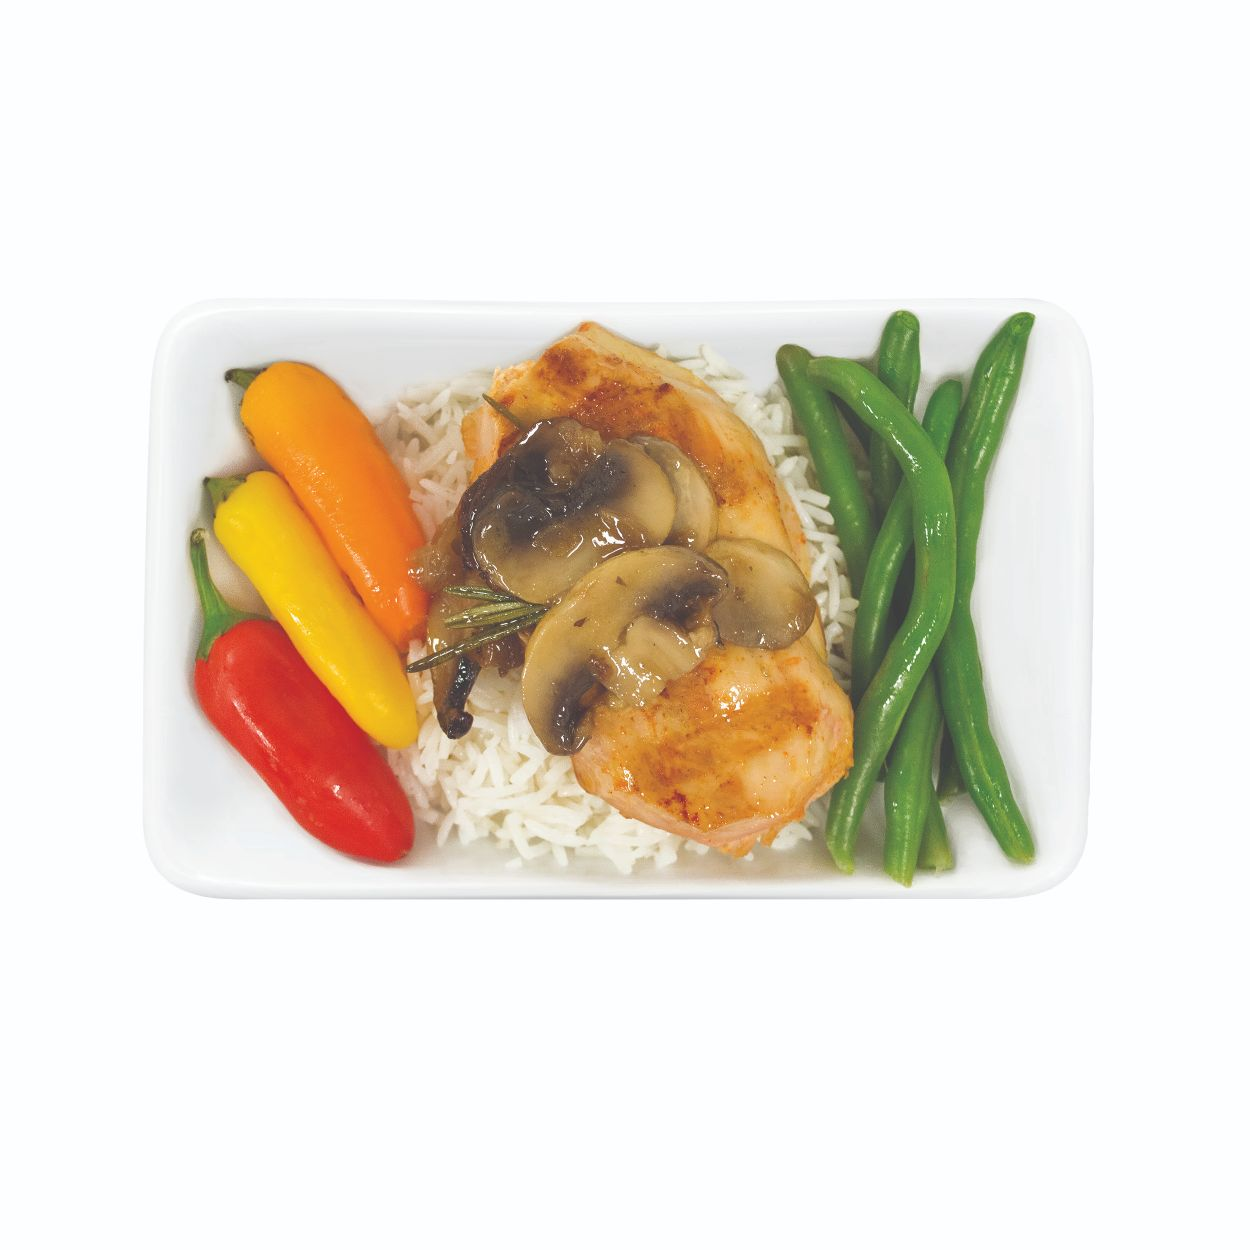 kosher travel meals